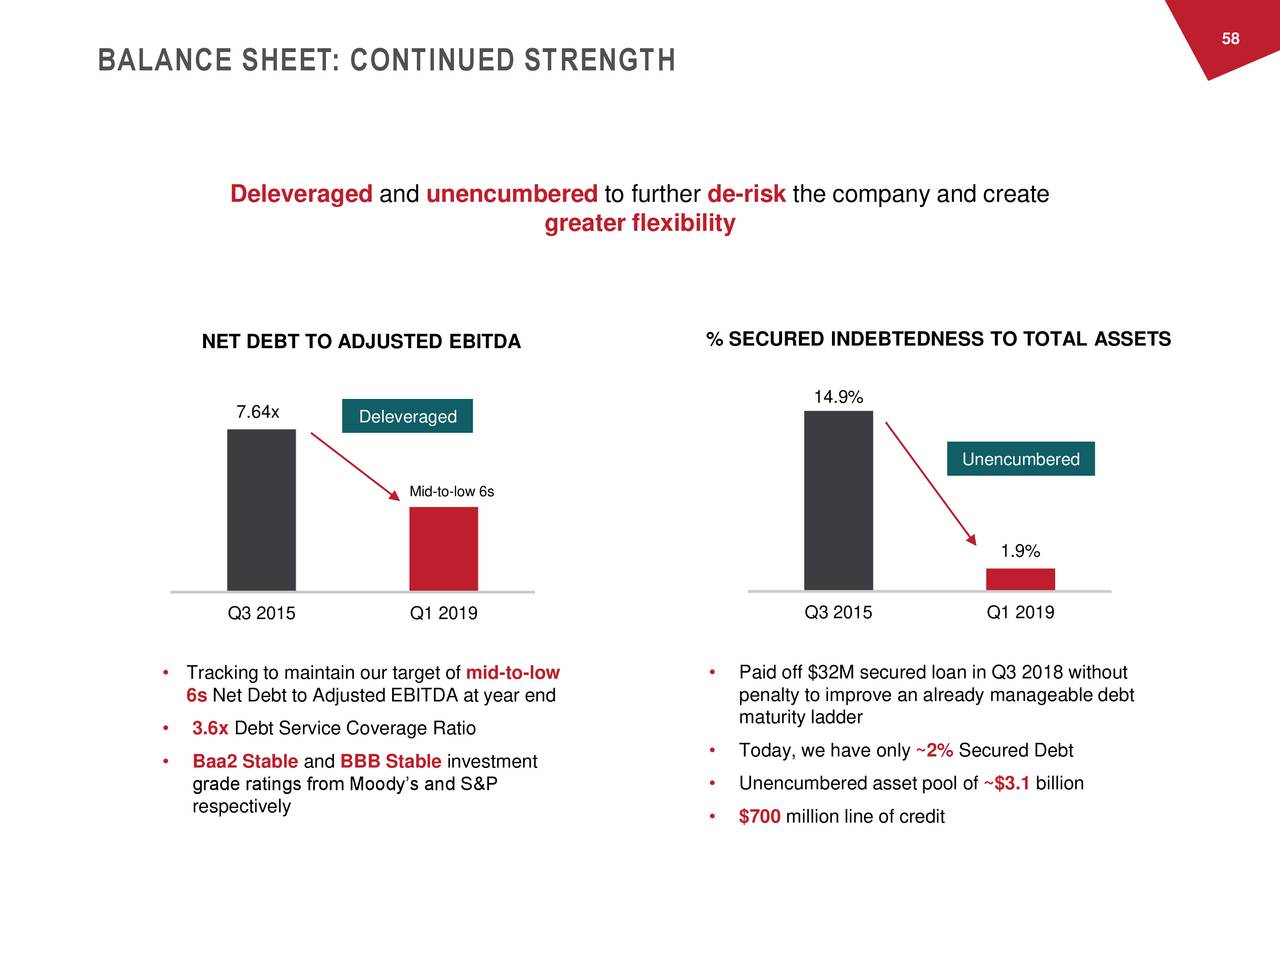 BALANCE SHEET: CONTINUED STRENGTH Deleveraged and unencumbered to further de-risk the company and create greater flexibility NET DEBT TO ADJUSTED EBITDA % SECURED INDEBTEDNESS TO TOTAL ASSETS 14.9% 7.64x Deleveraged Unencumbered Mid-to-low 6s 1.9% Q3 2015 Q1 2019 Q3 2015 Q1 2019 • Tracking to maintain our target of mid-to-low • Paid off $32M secured loan in Q3 2018 without 6s Net Debt to Adjusted EBITDA at year end penalty to improve an already manageable debt maturity ladder • 3.6x Debt Service Coverage Ratio • Baa2 Stable and BBB Stable investment • Today, we have only ~2% Secured Debt grade ratings from Moody's and S&P • Unencumbered asset pool of ~$3.1 billion respectively • $700 million line of credit